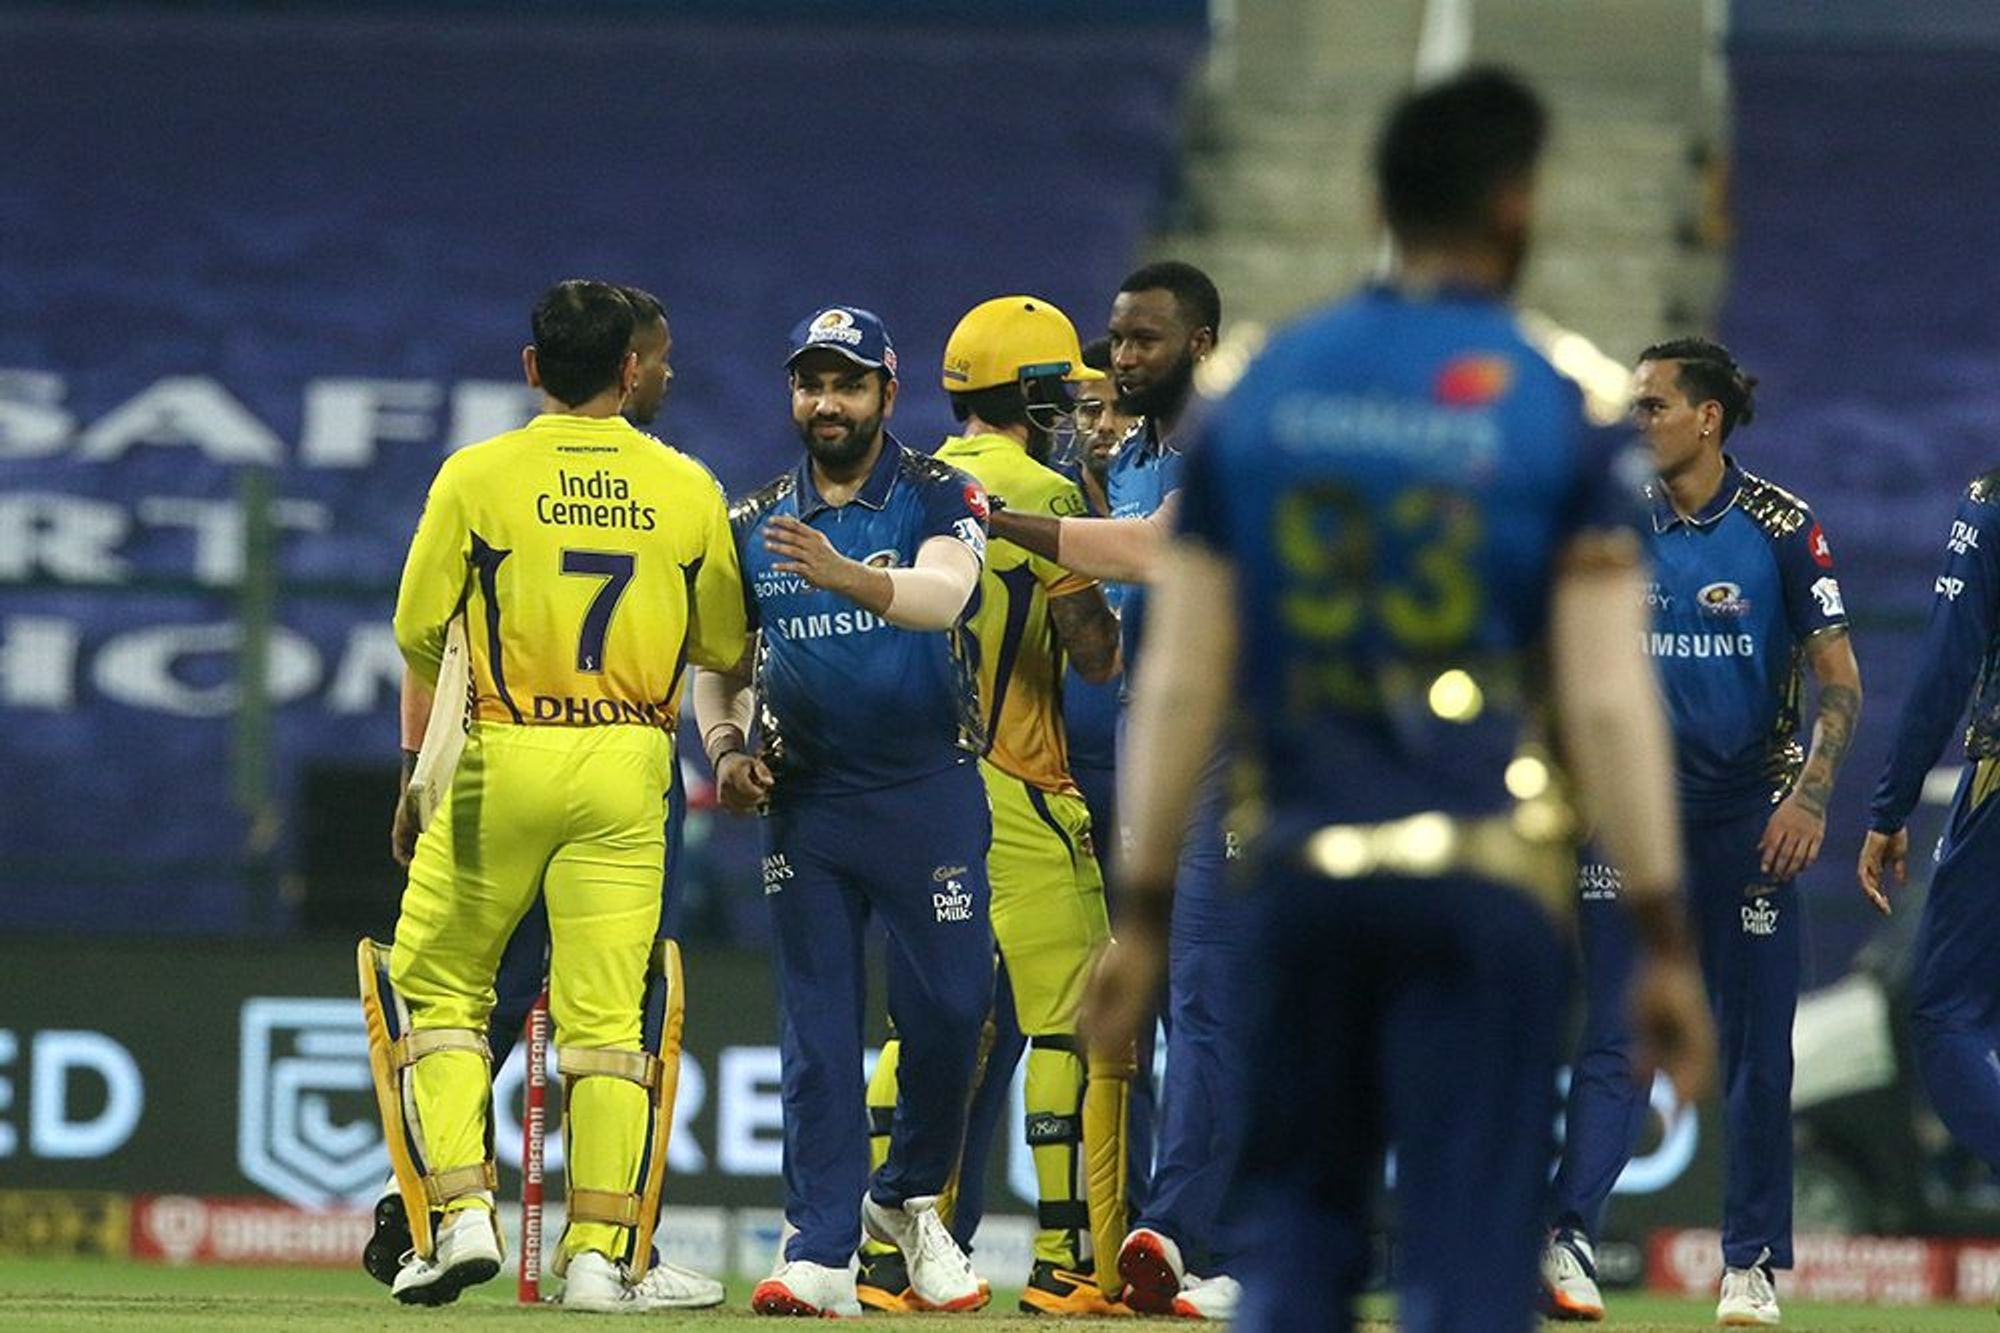 The defending champions were found wanting in the IPL 2020 opener | IANS